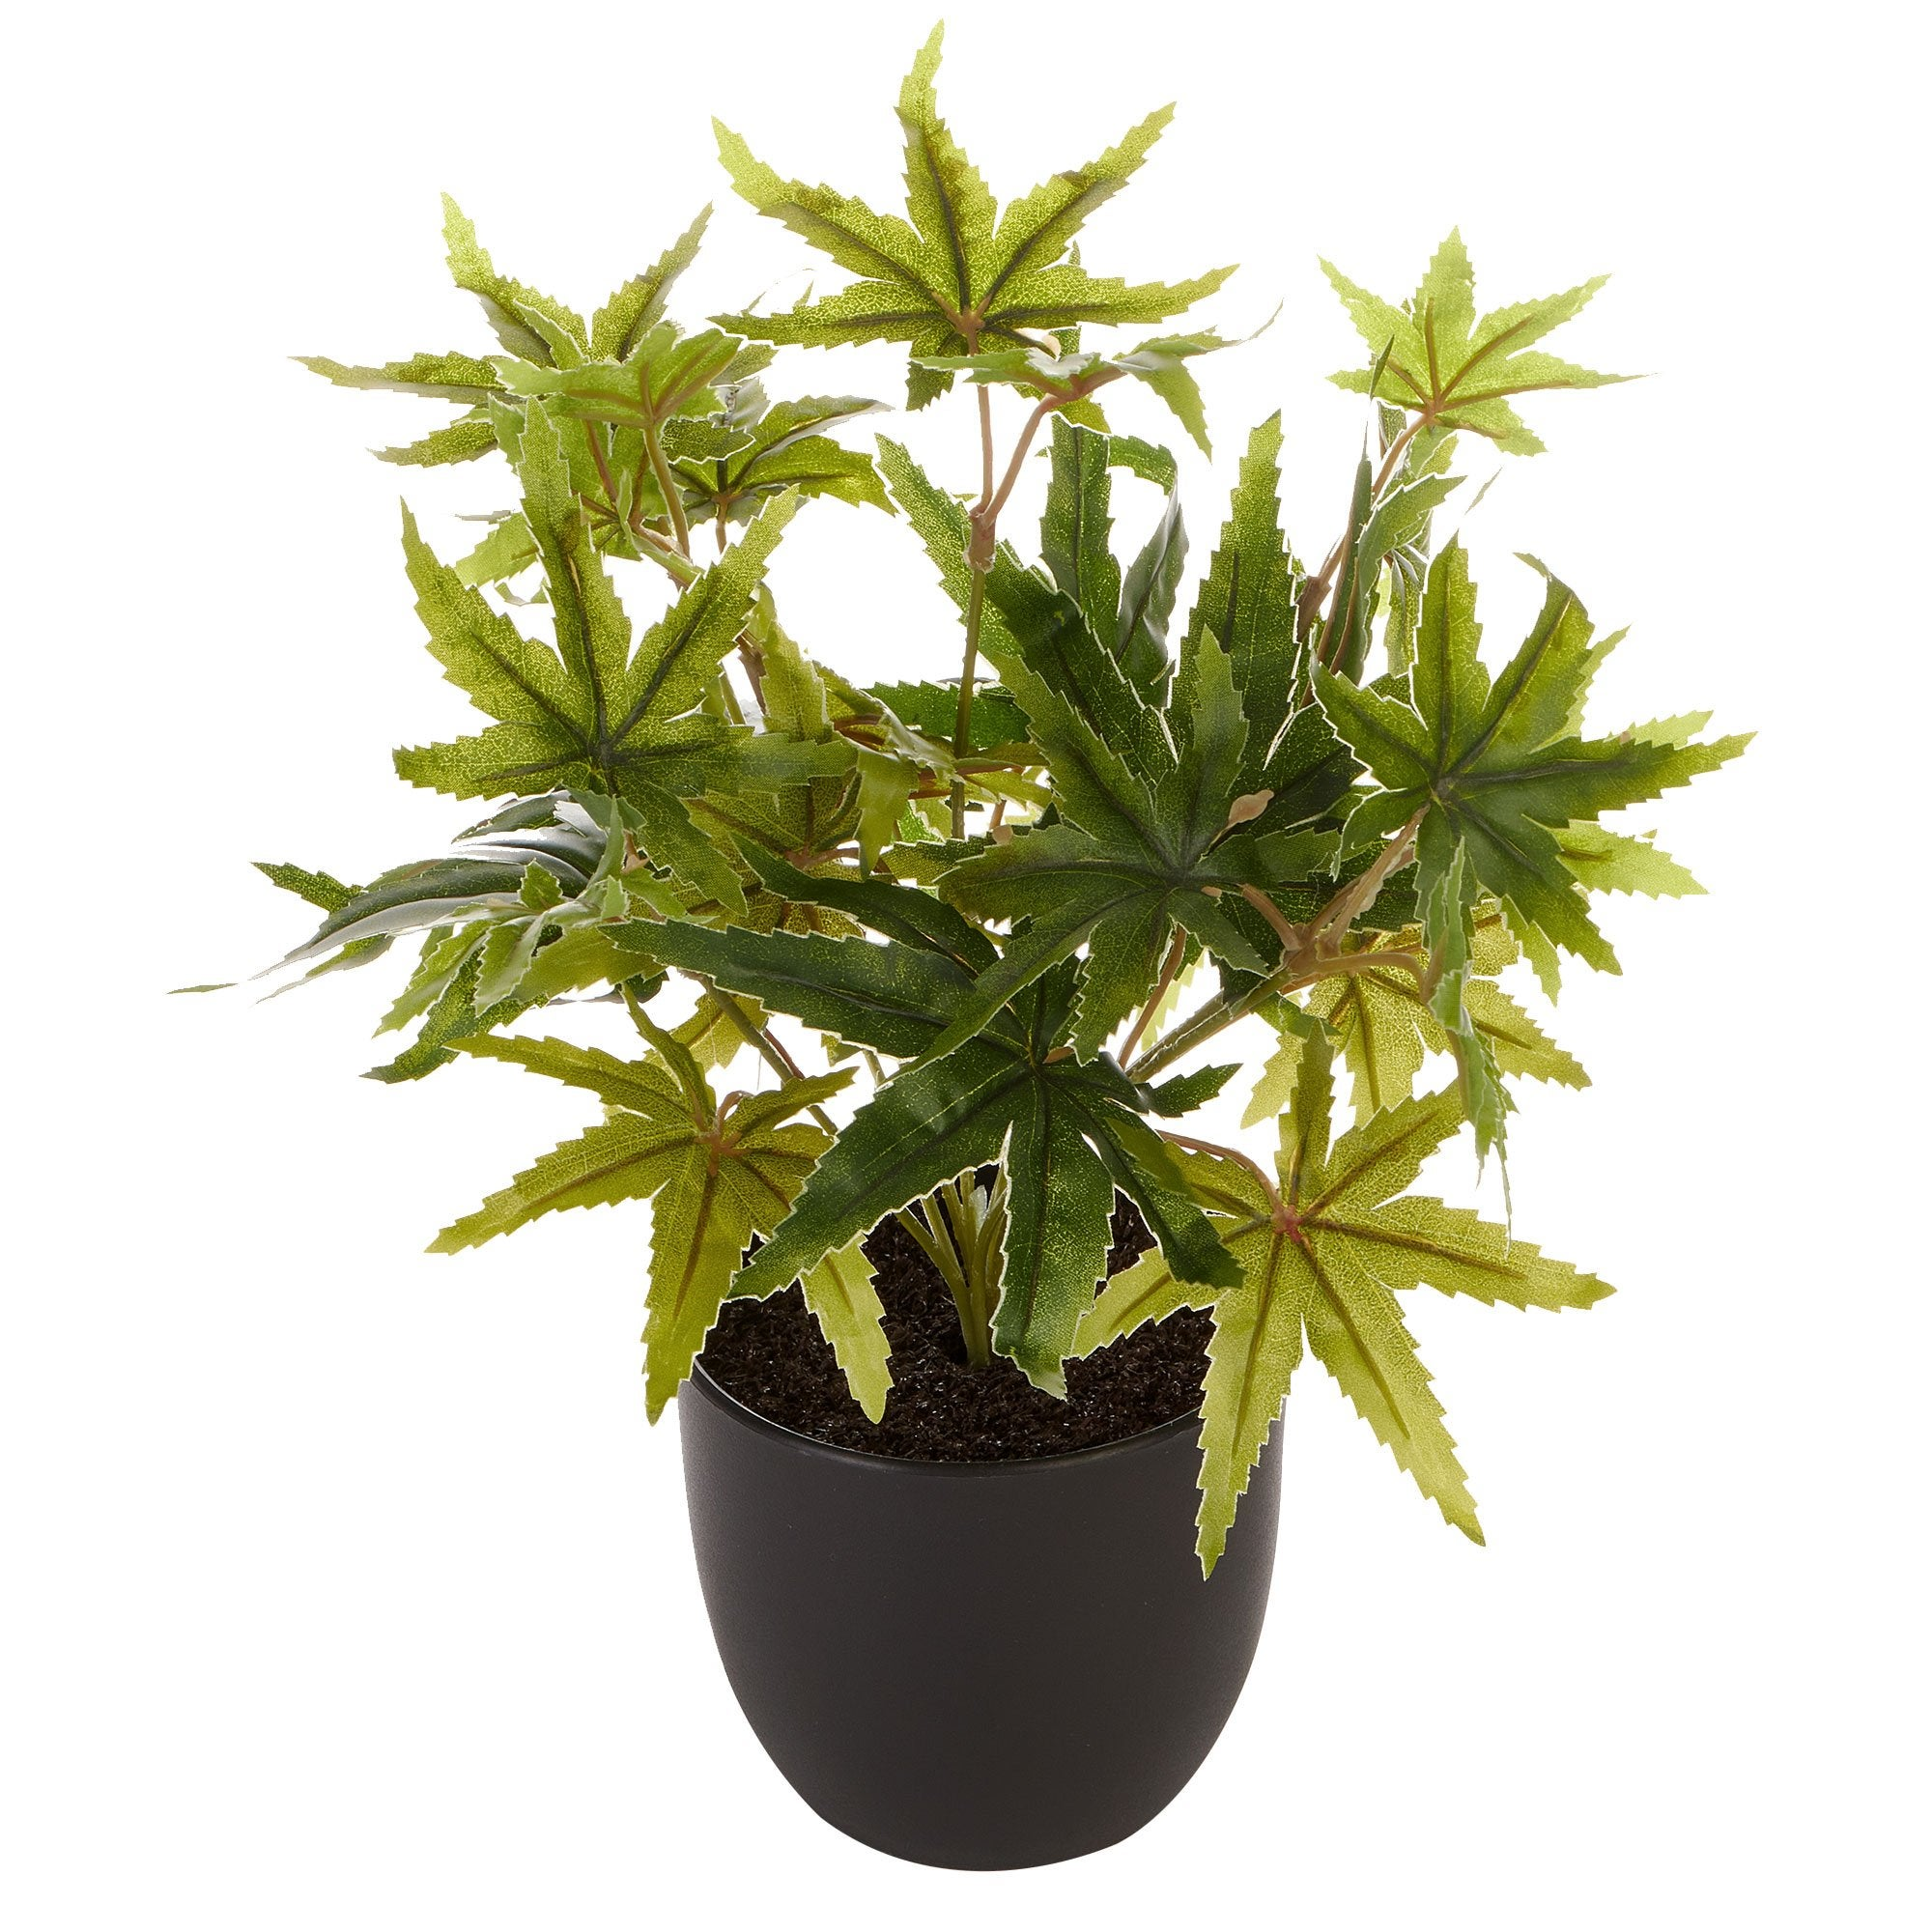 24Cm Tall Potted Artificial Maple Decor Fake Plant Indoor